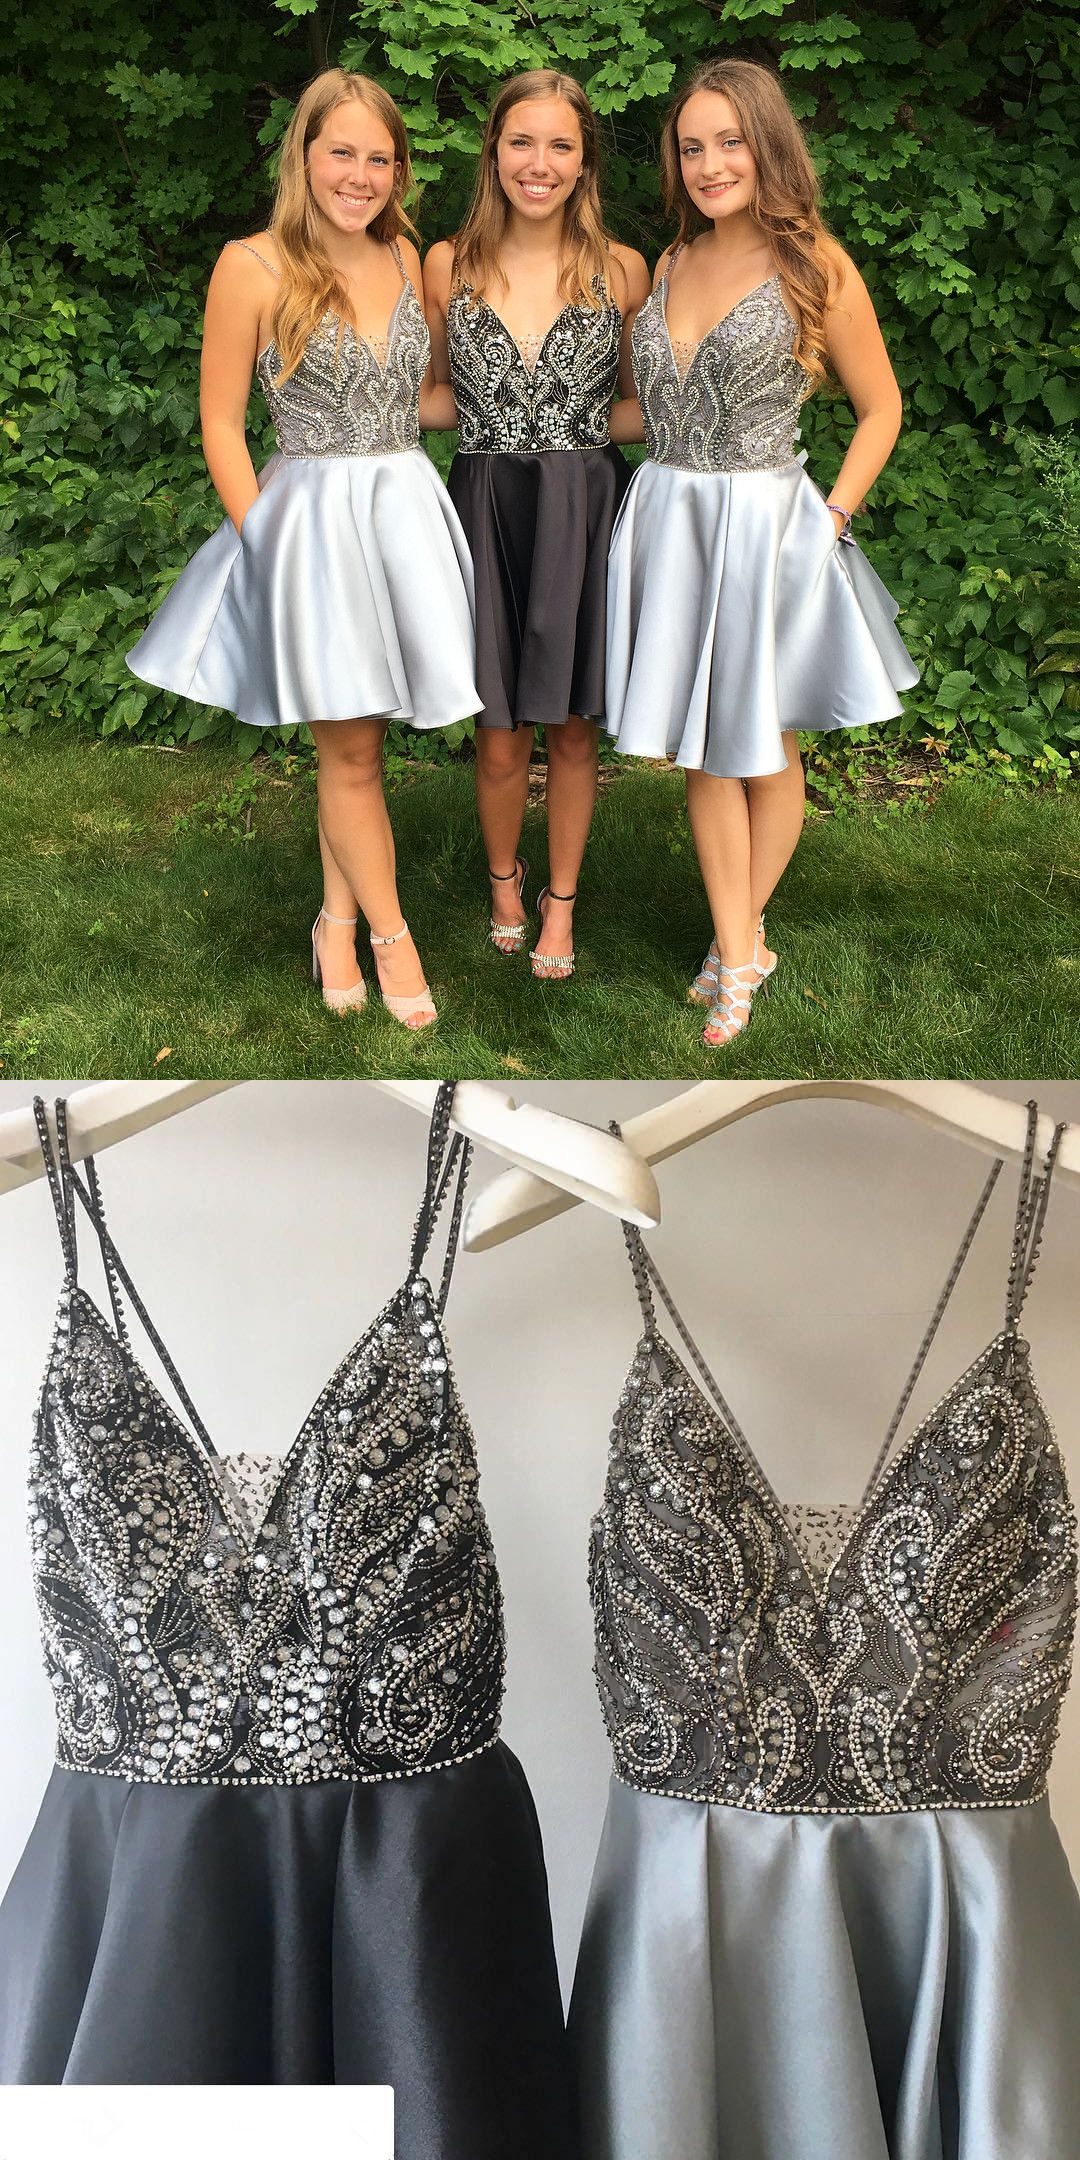 Black and Silver Short Homecoming Dresses